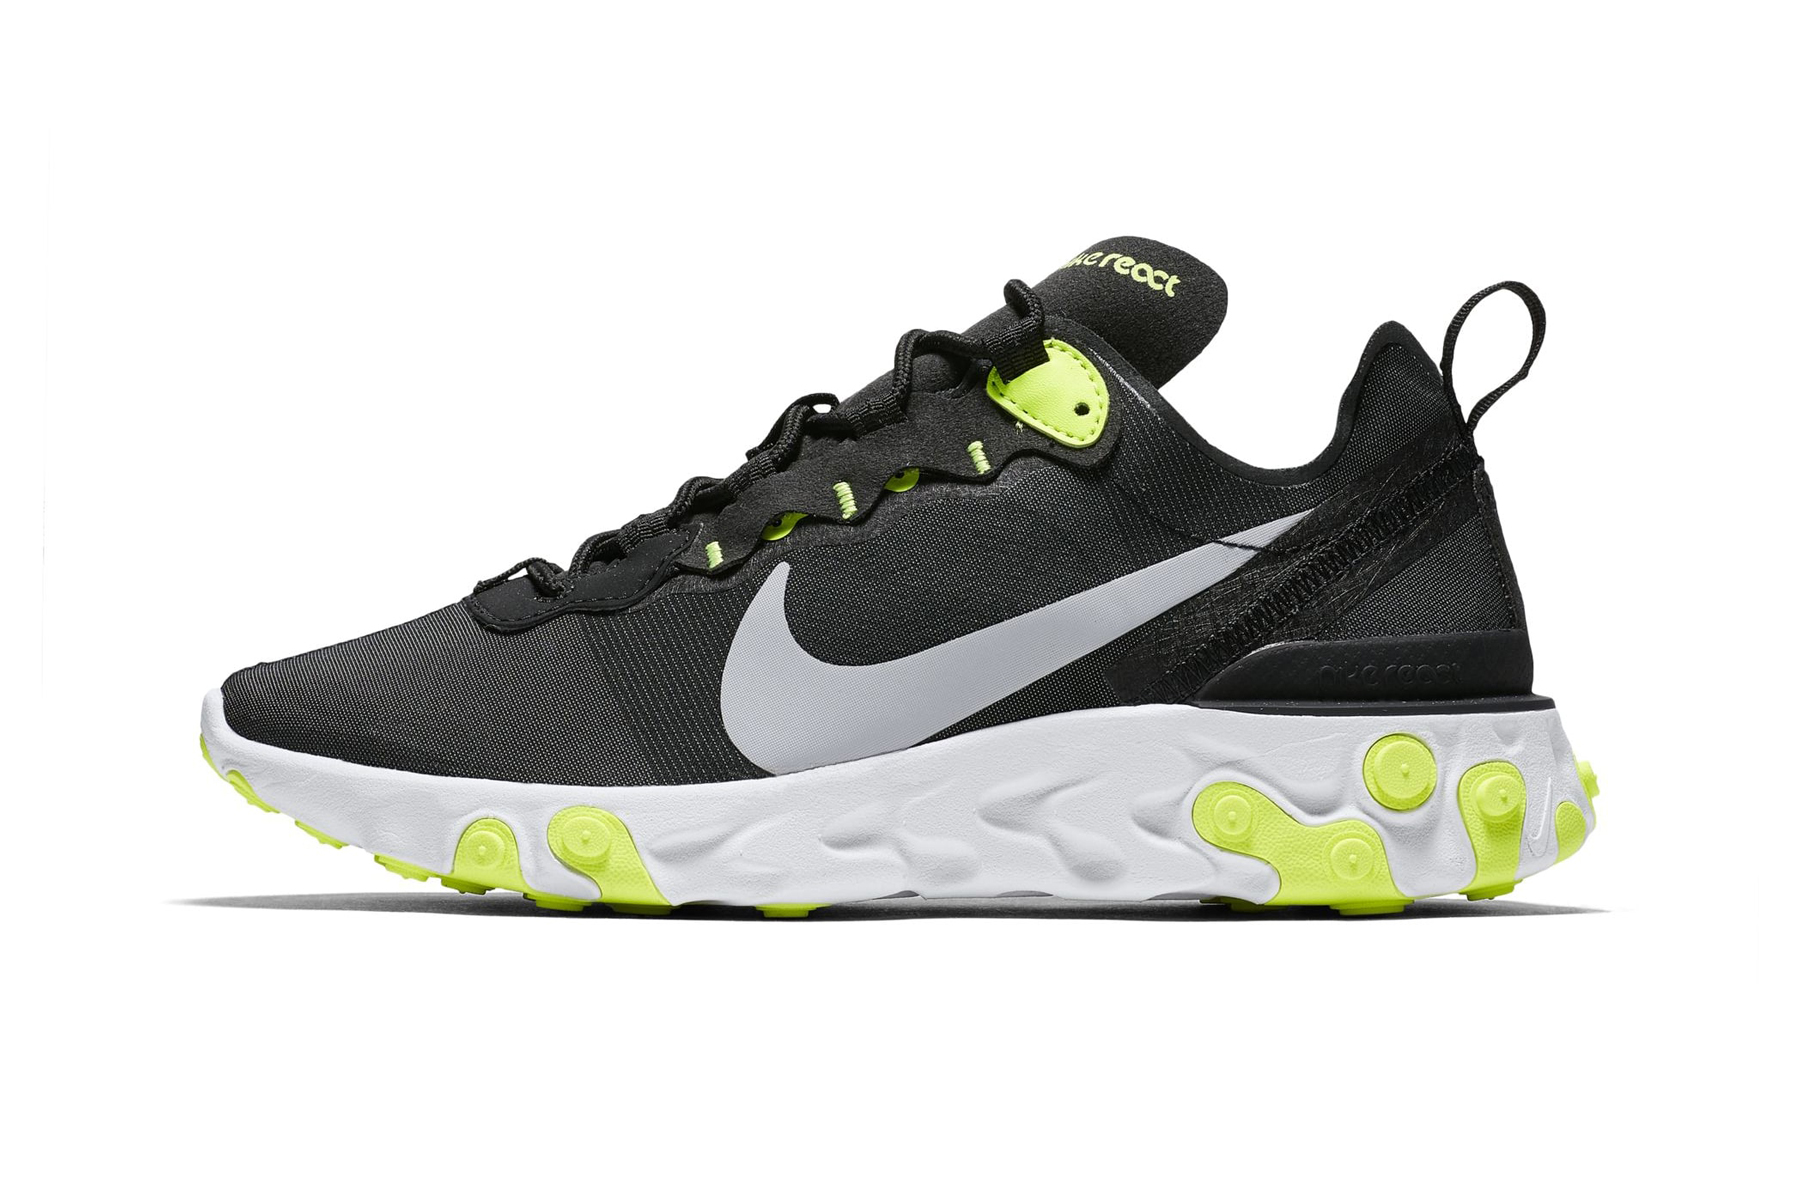 nike react element 55 first look colorways Black Cool Grey White Volt